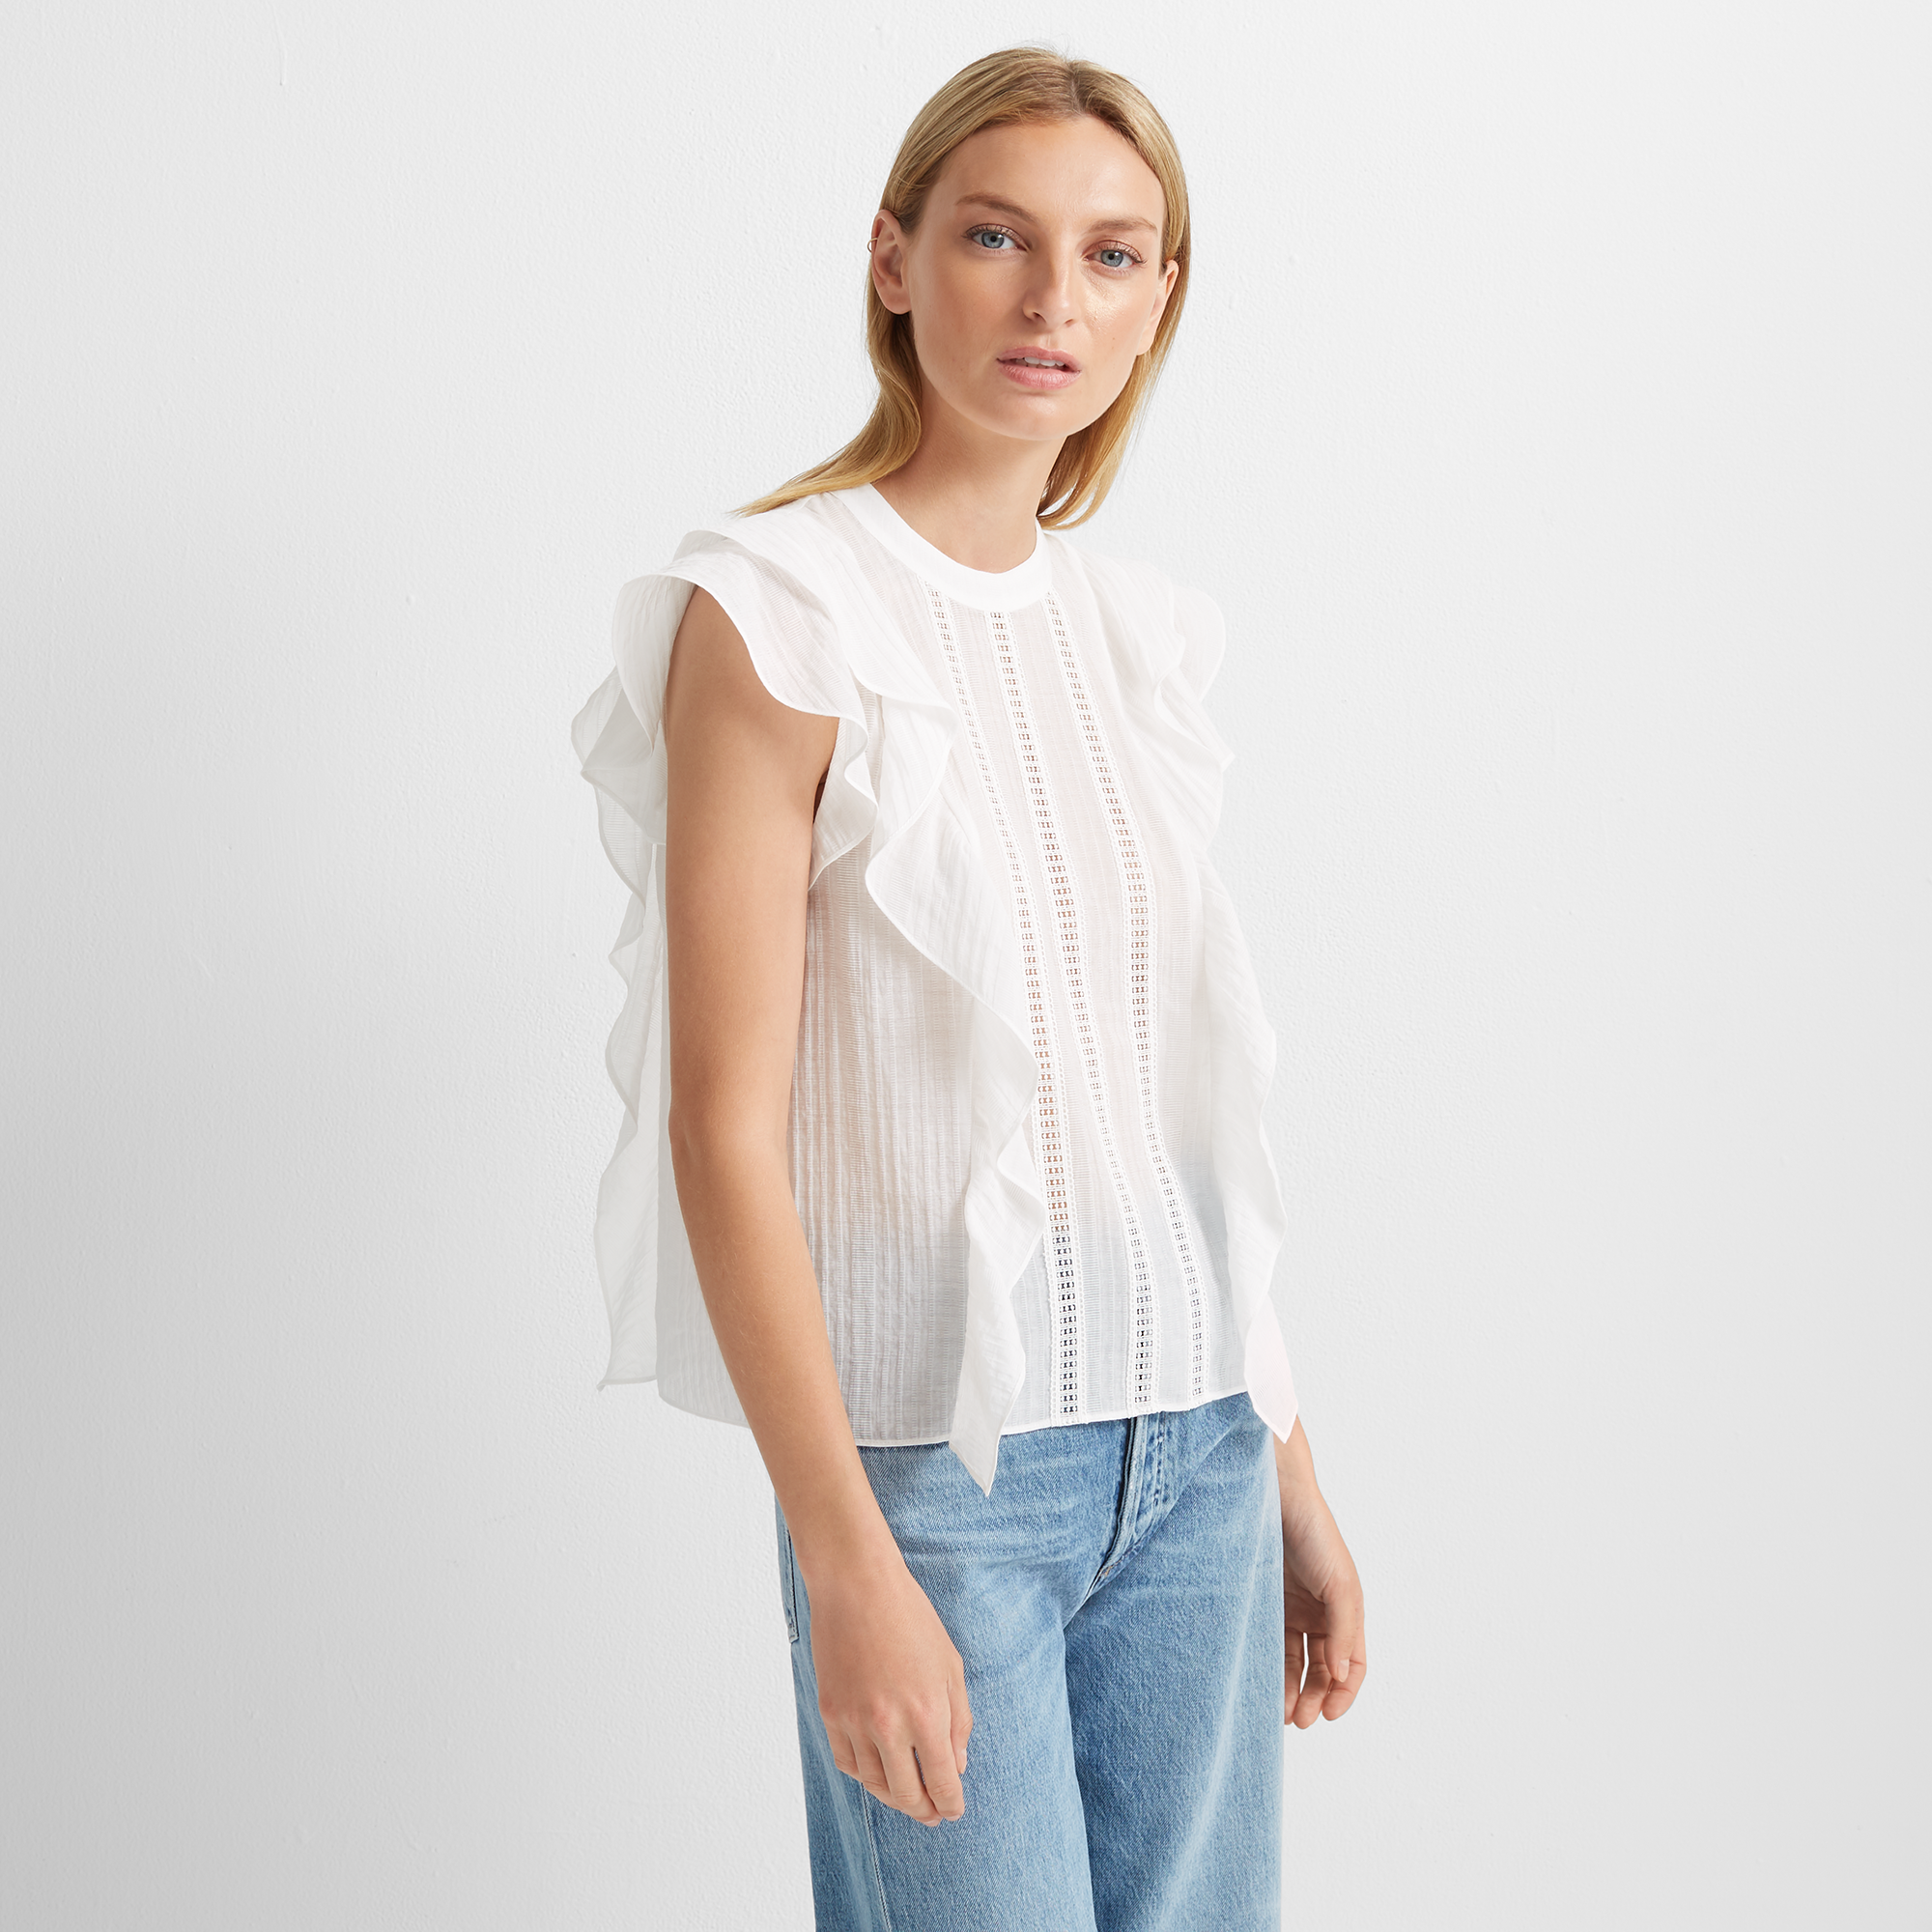 Ruffle Front Top White.jpg